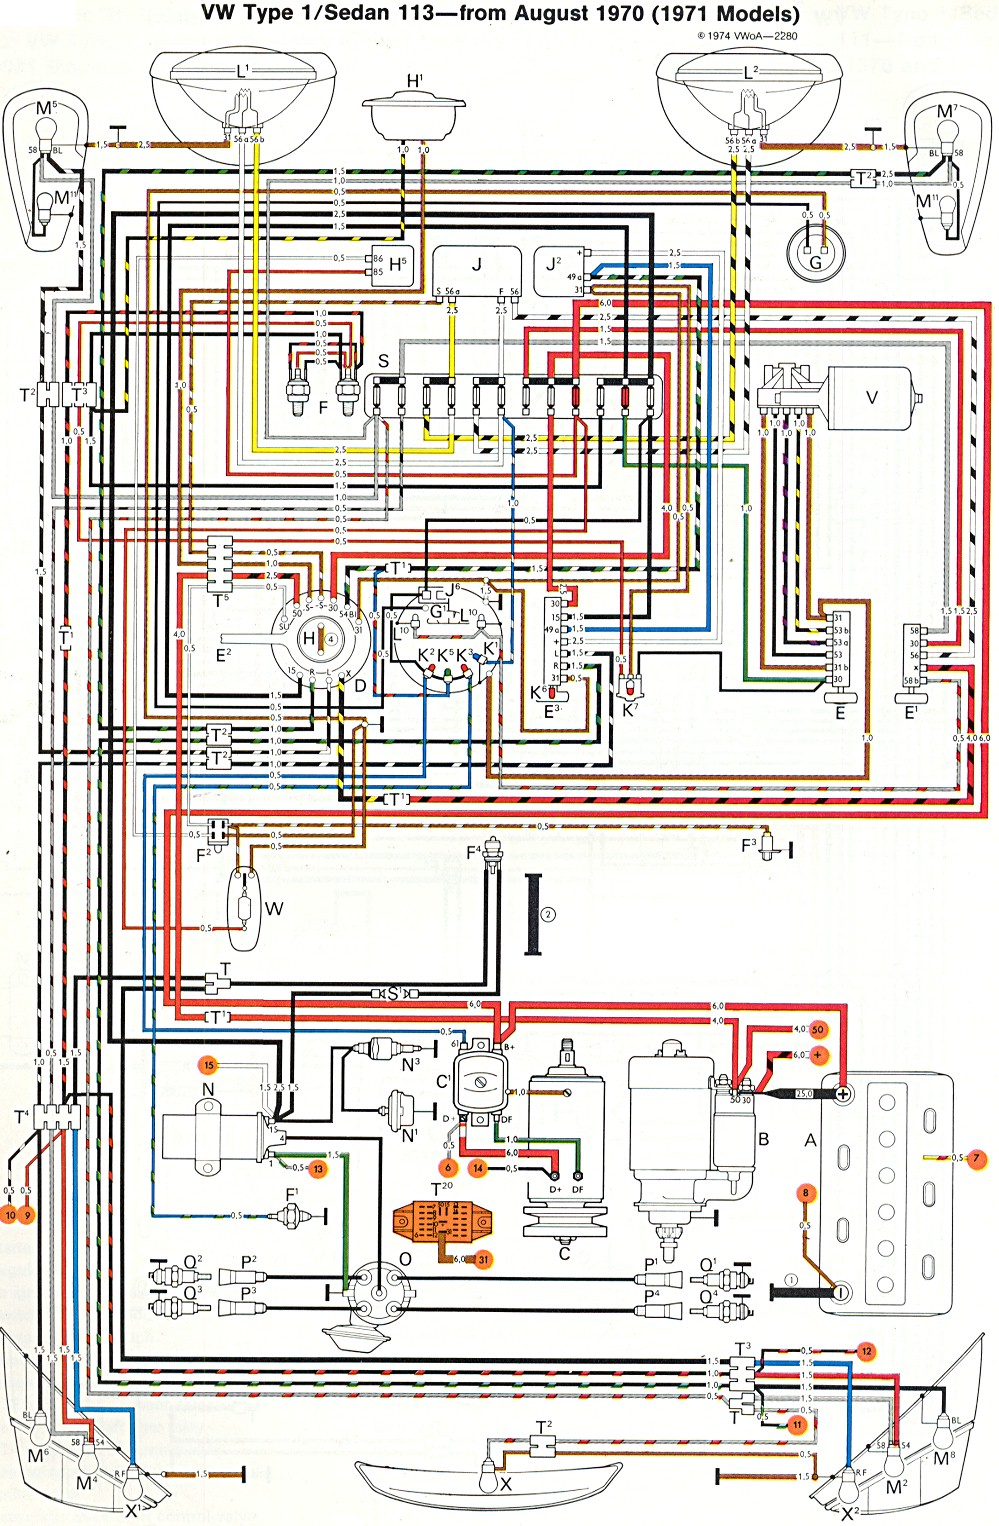 bug_super_71 1971 super beetle wiring diagram thegoldenbug com vw beetle wiring diagram at couponss.co